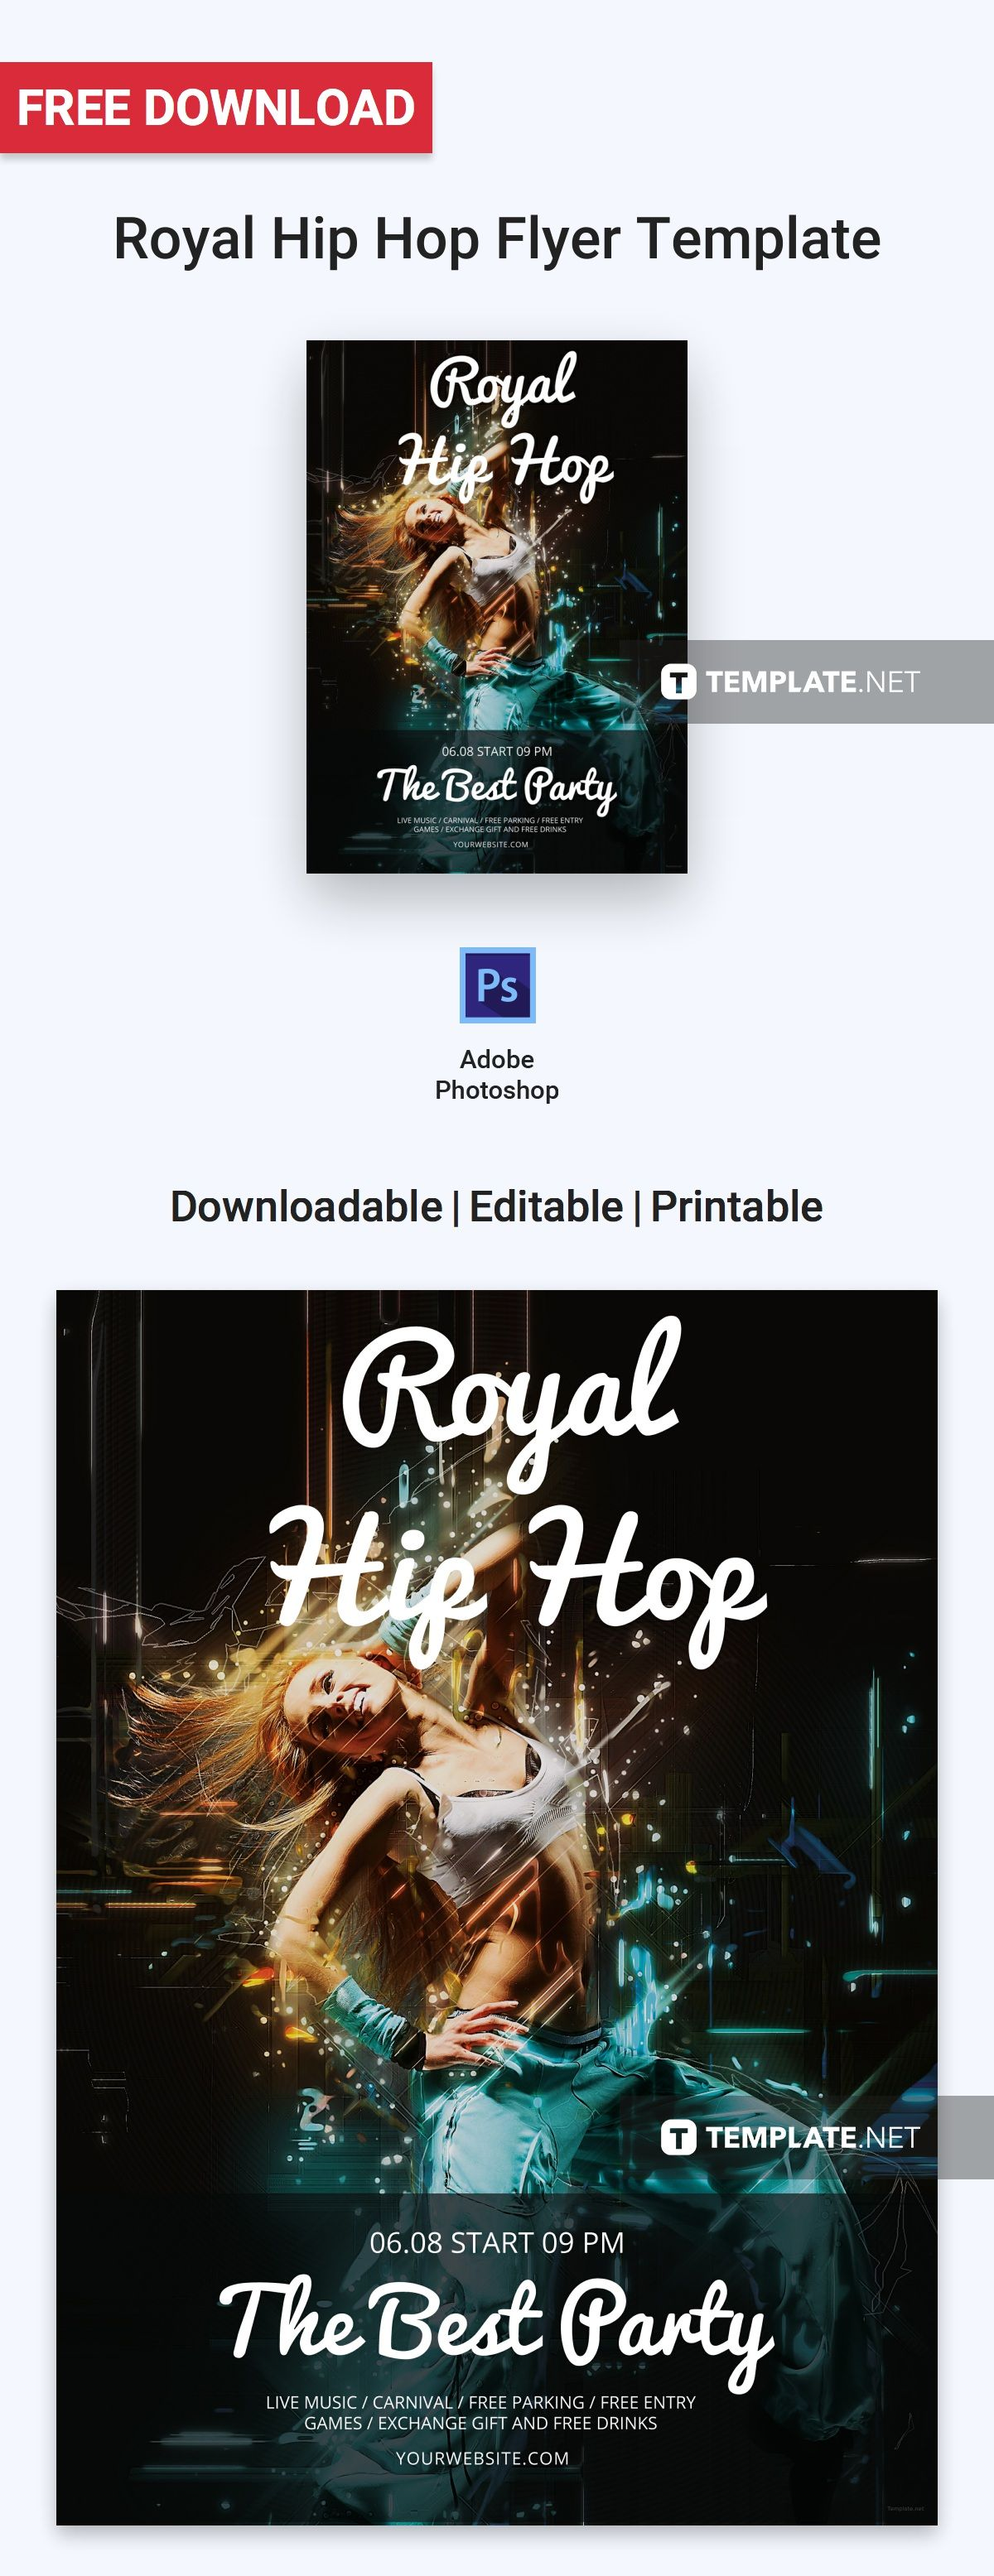 free royal hip hop flyer flyer templates designs 2019